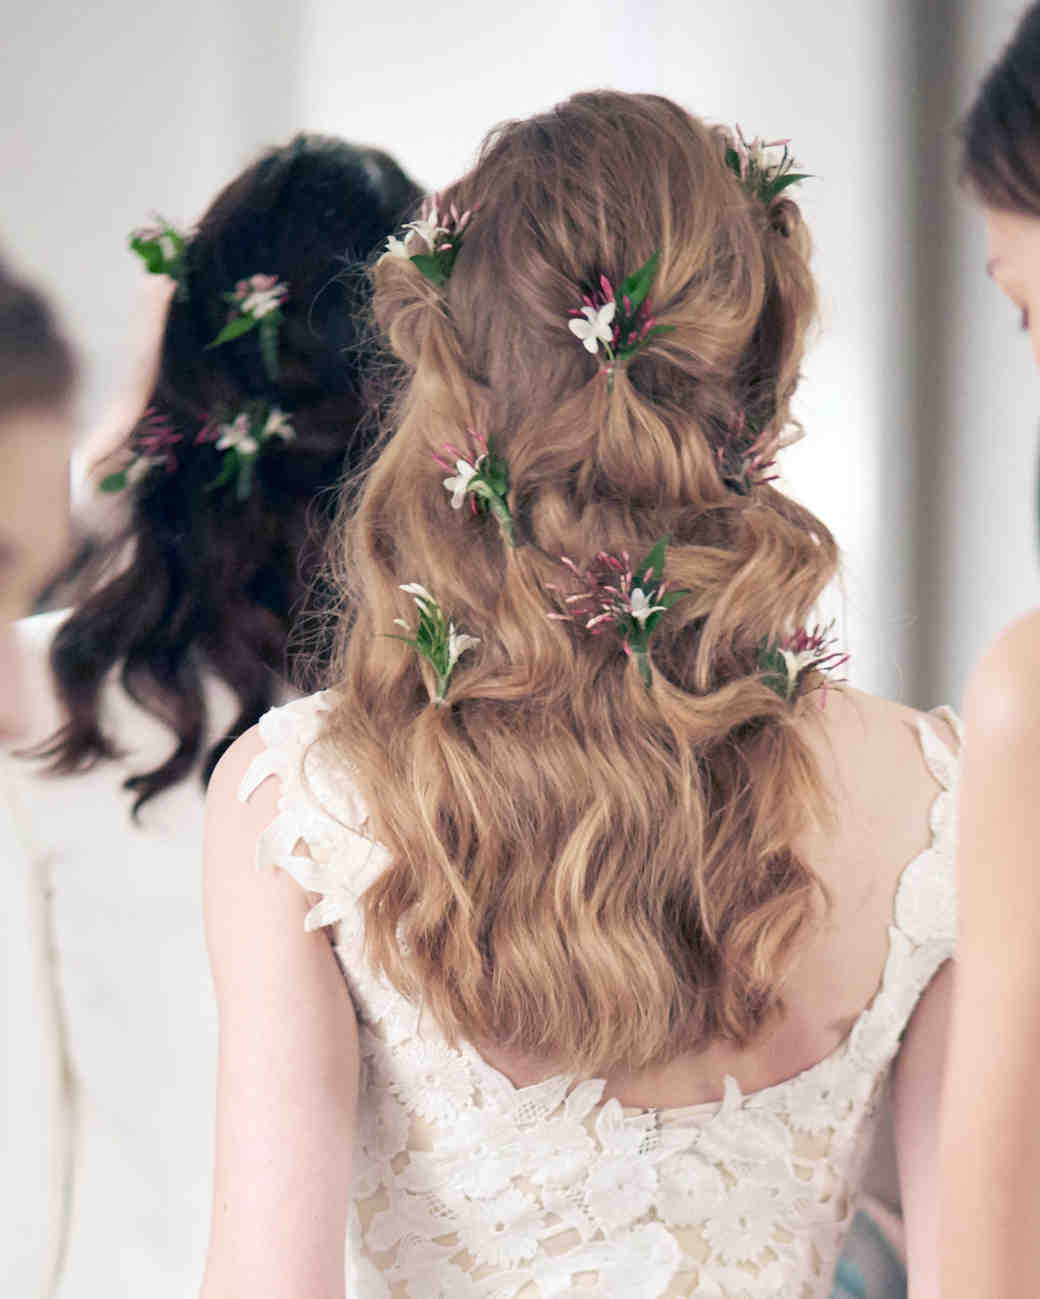 Wedding Hair Style Video: 96 Fun Facts About Your Favorite Bridal Designers